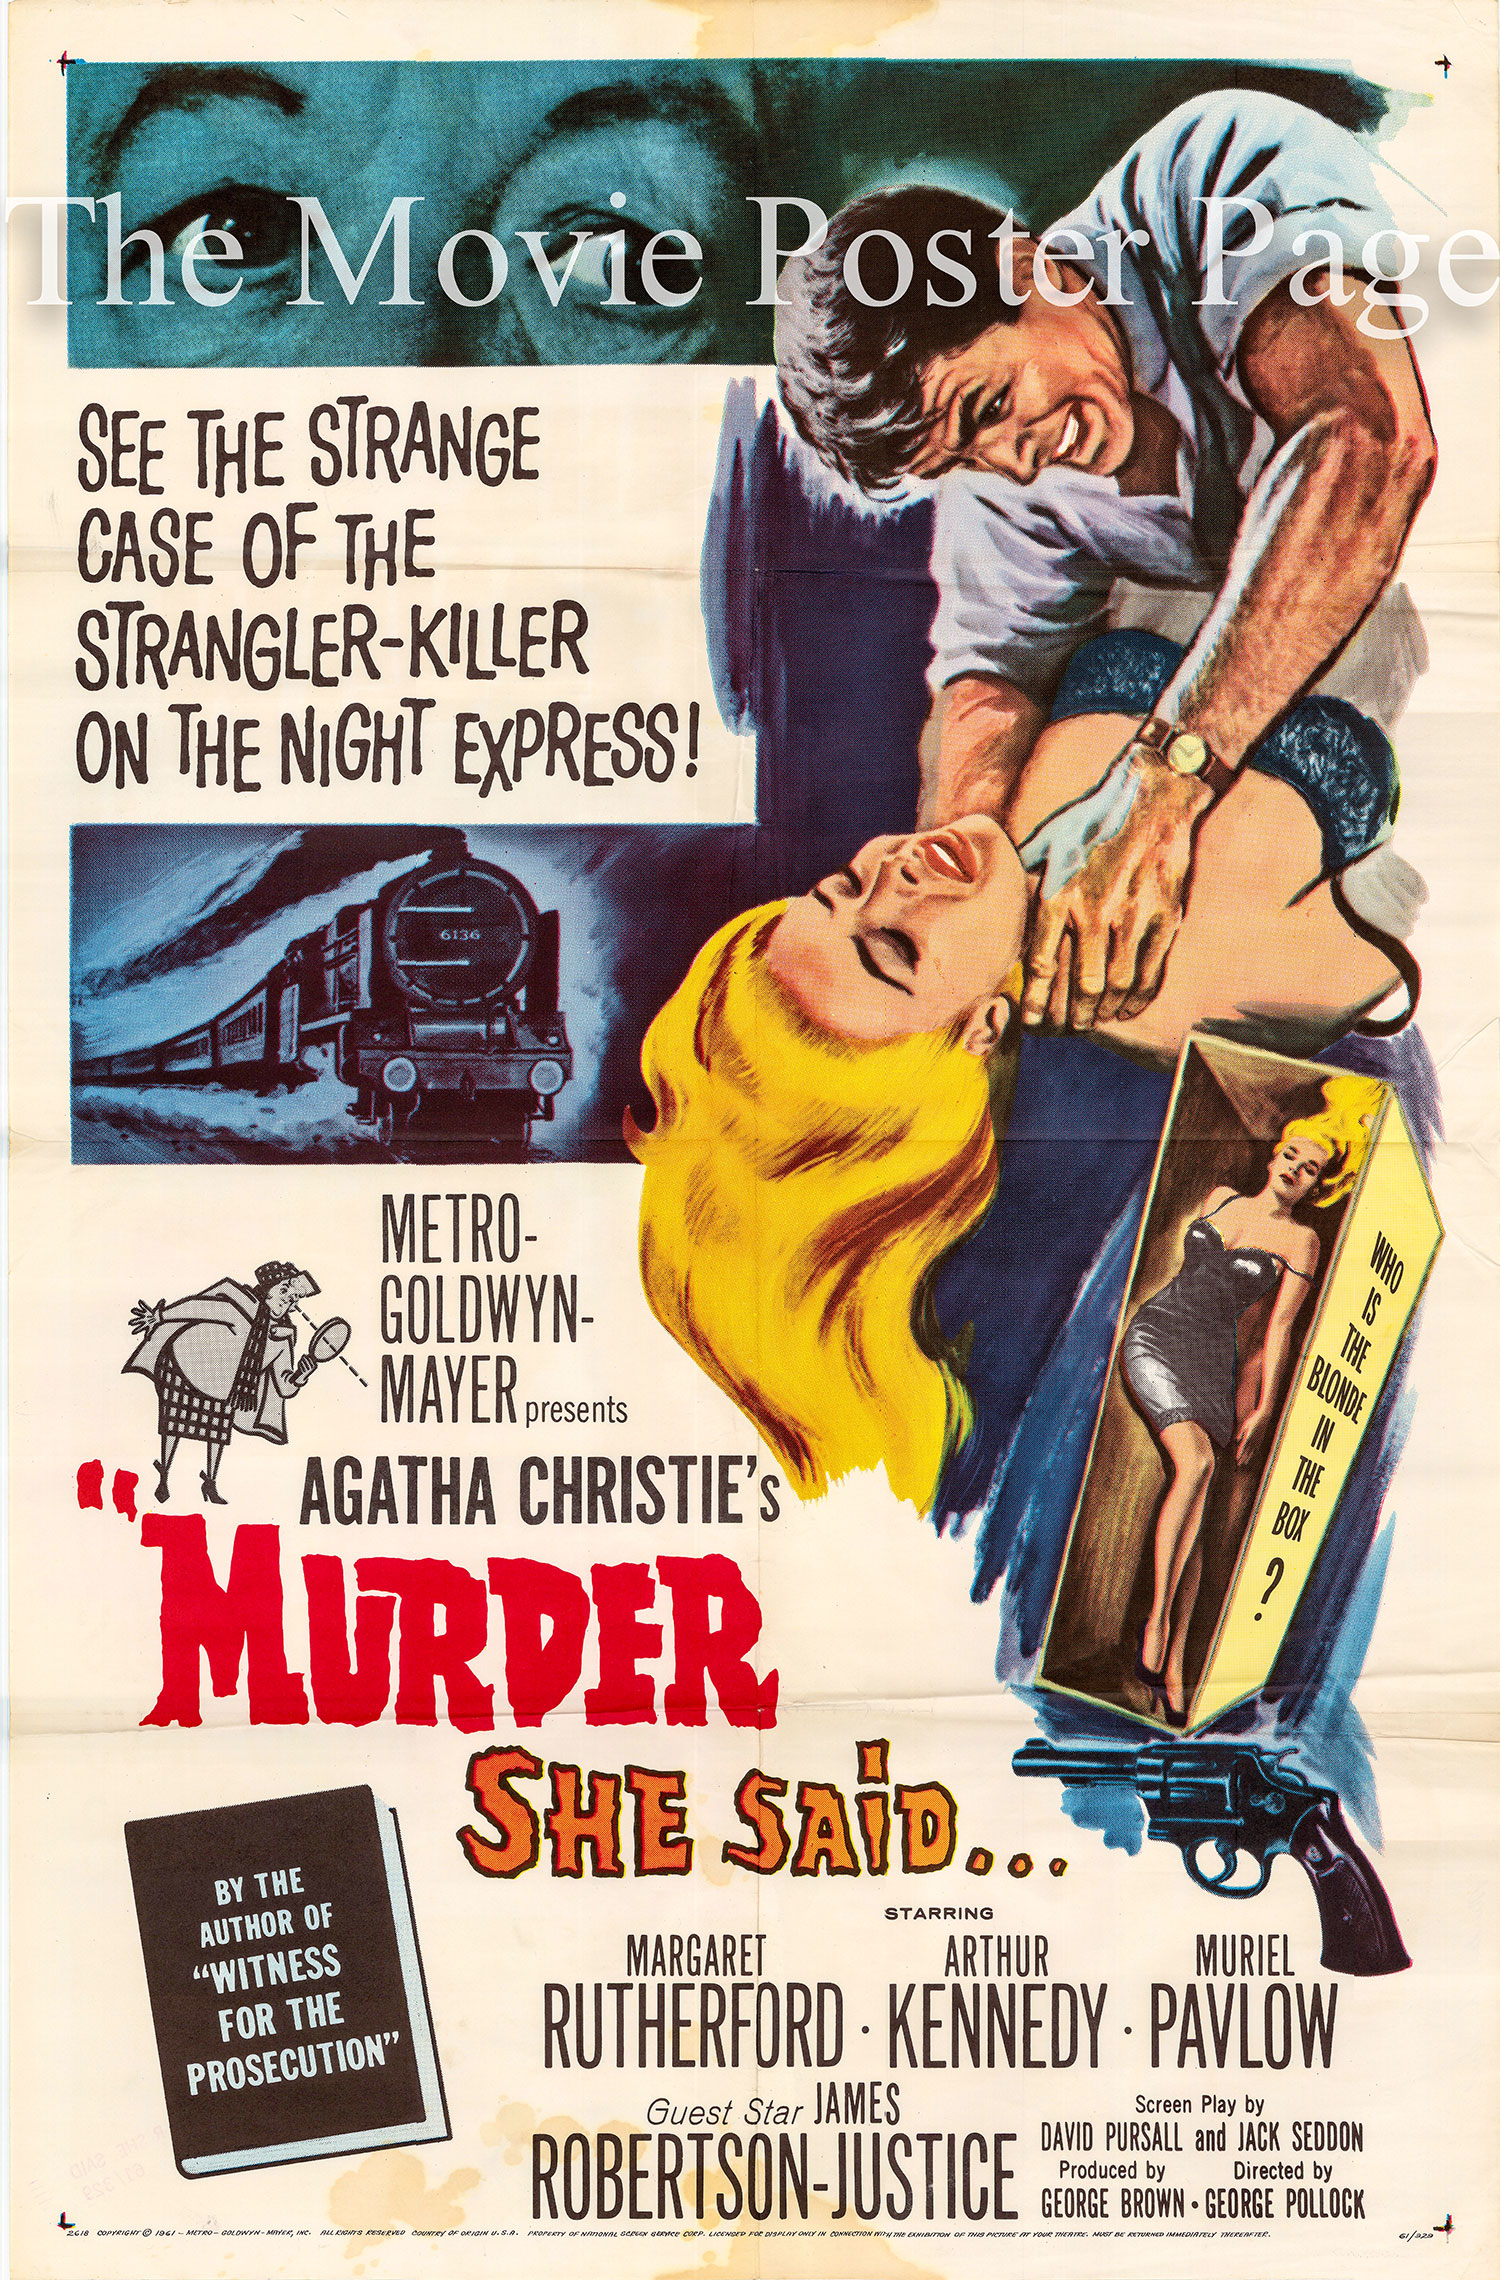 Pictured is a US promotional one-sheet poster for the 1961 George Pollock film Murder She Said starring Margaret Rutherford.